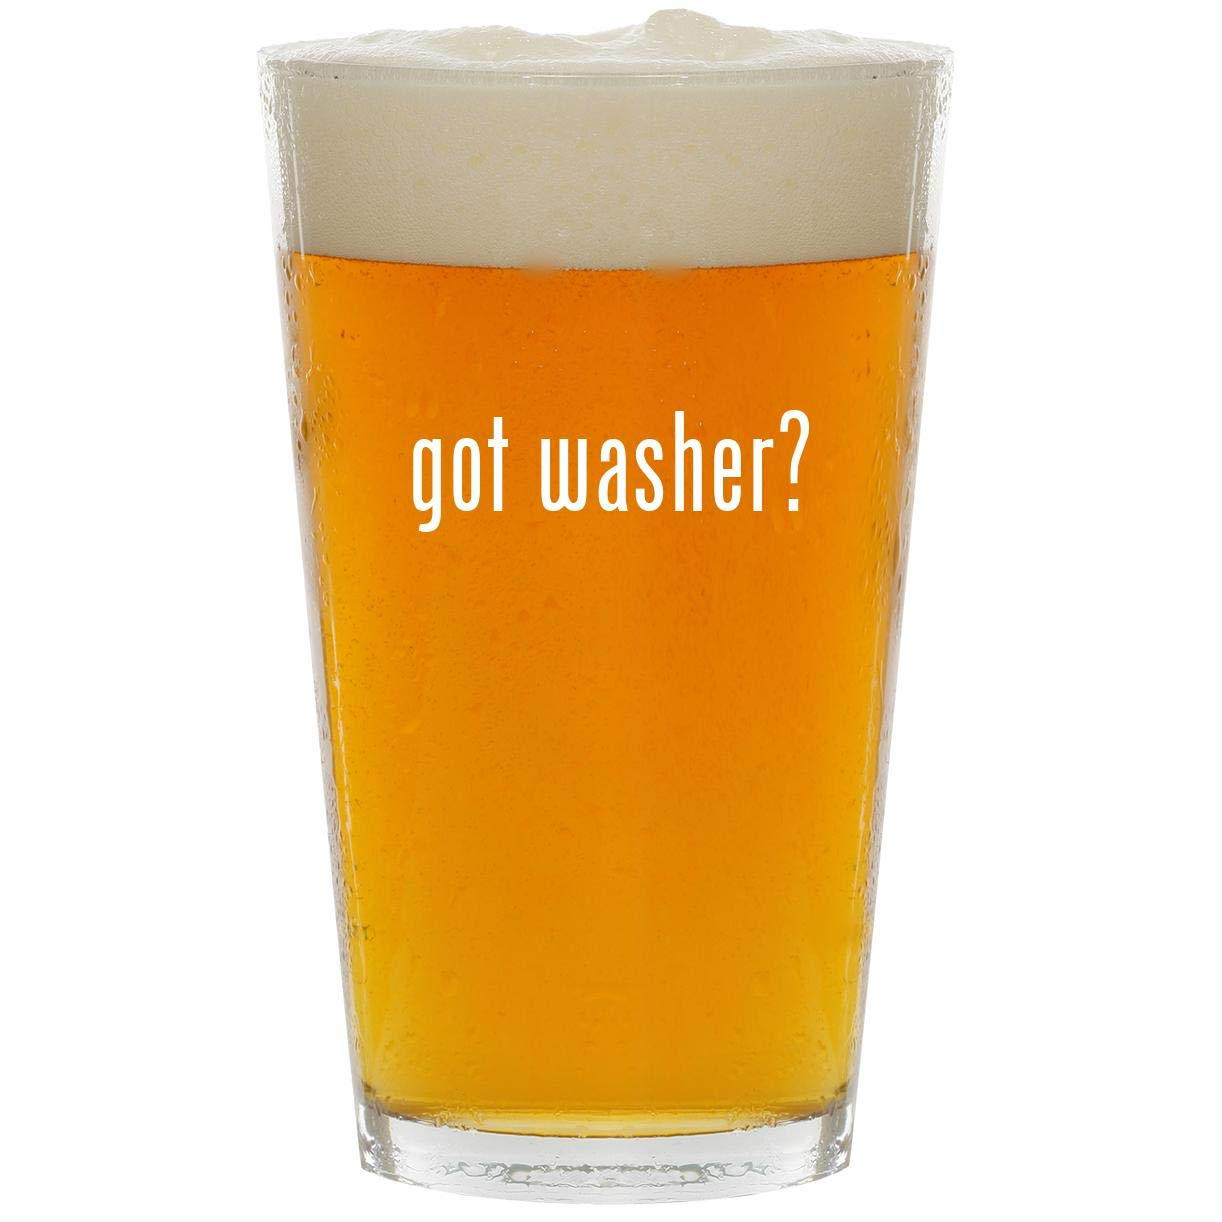 got washer? - Glass 16oz Beer Pint